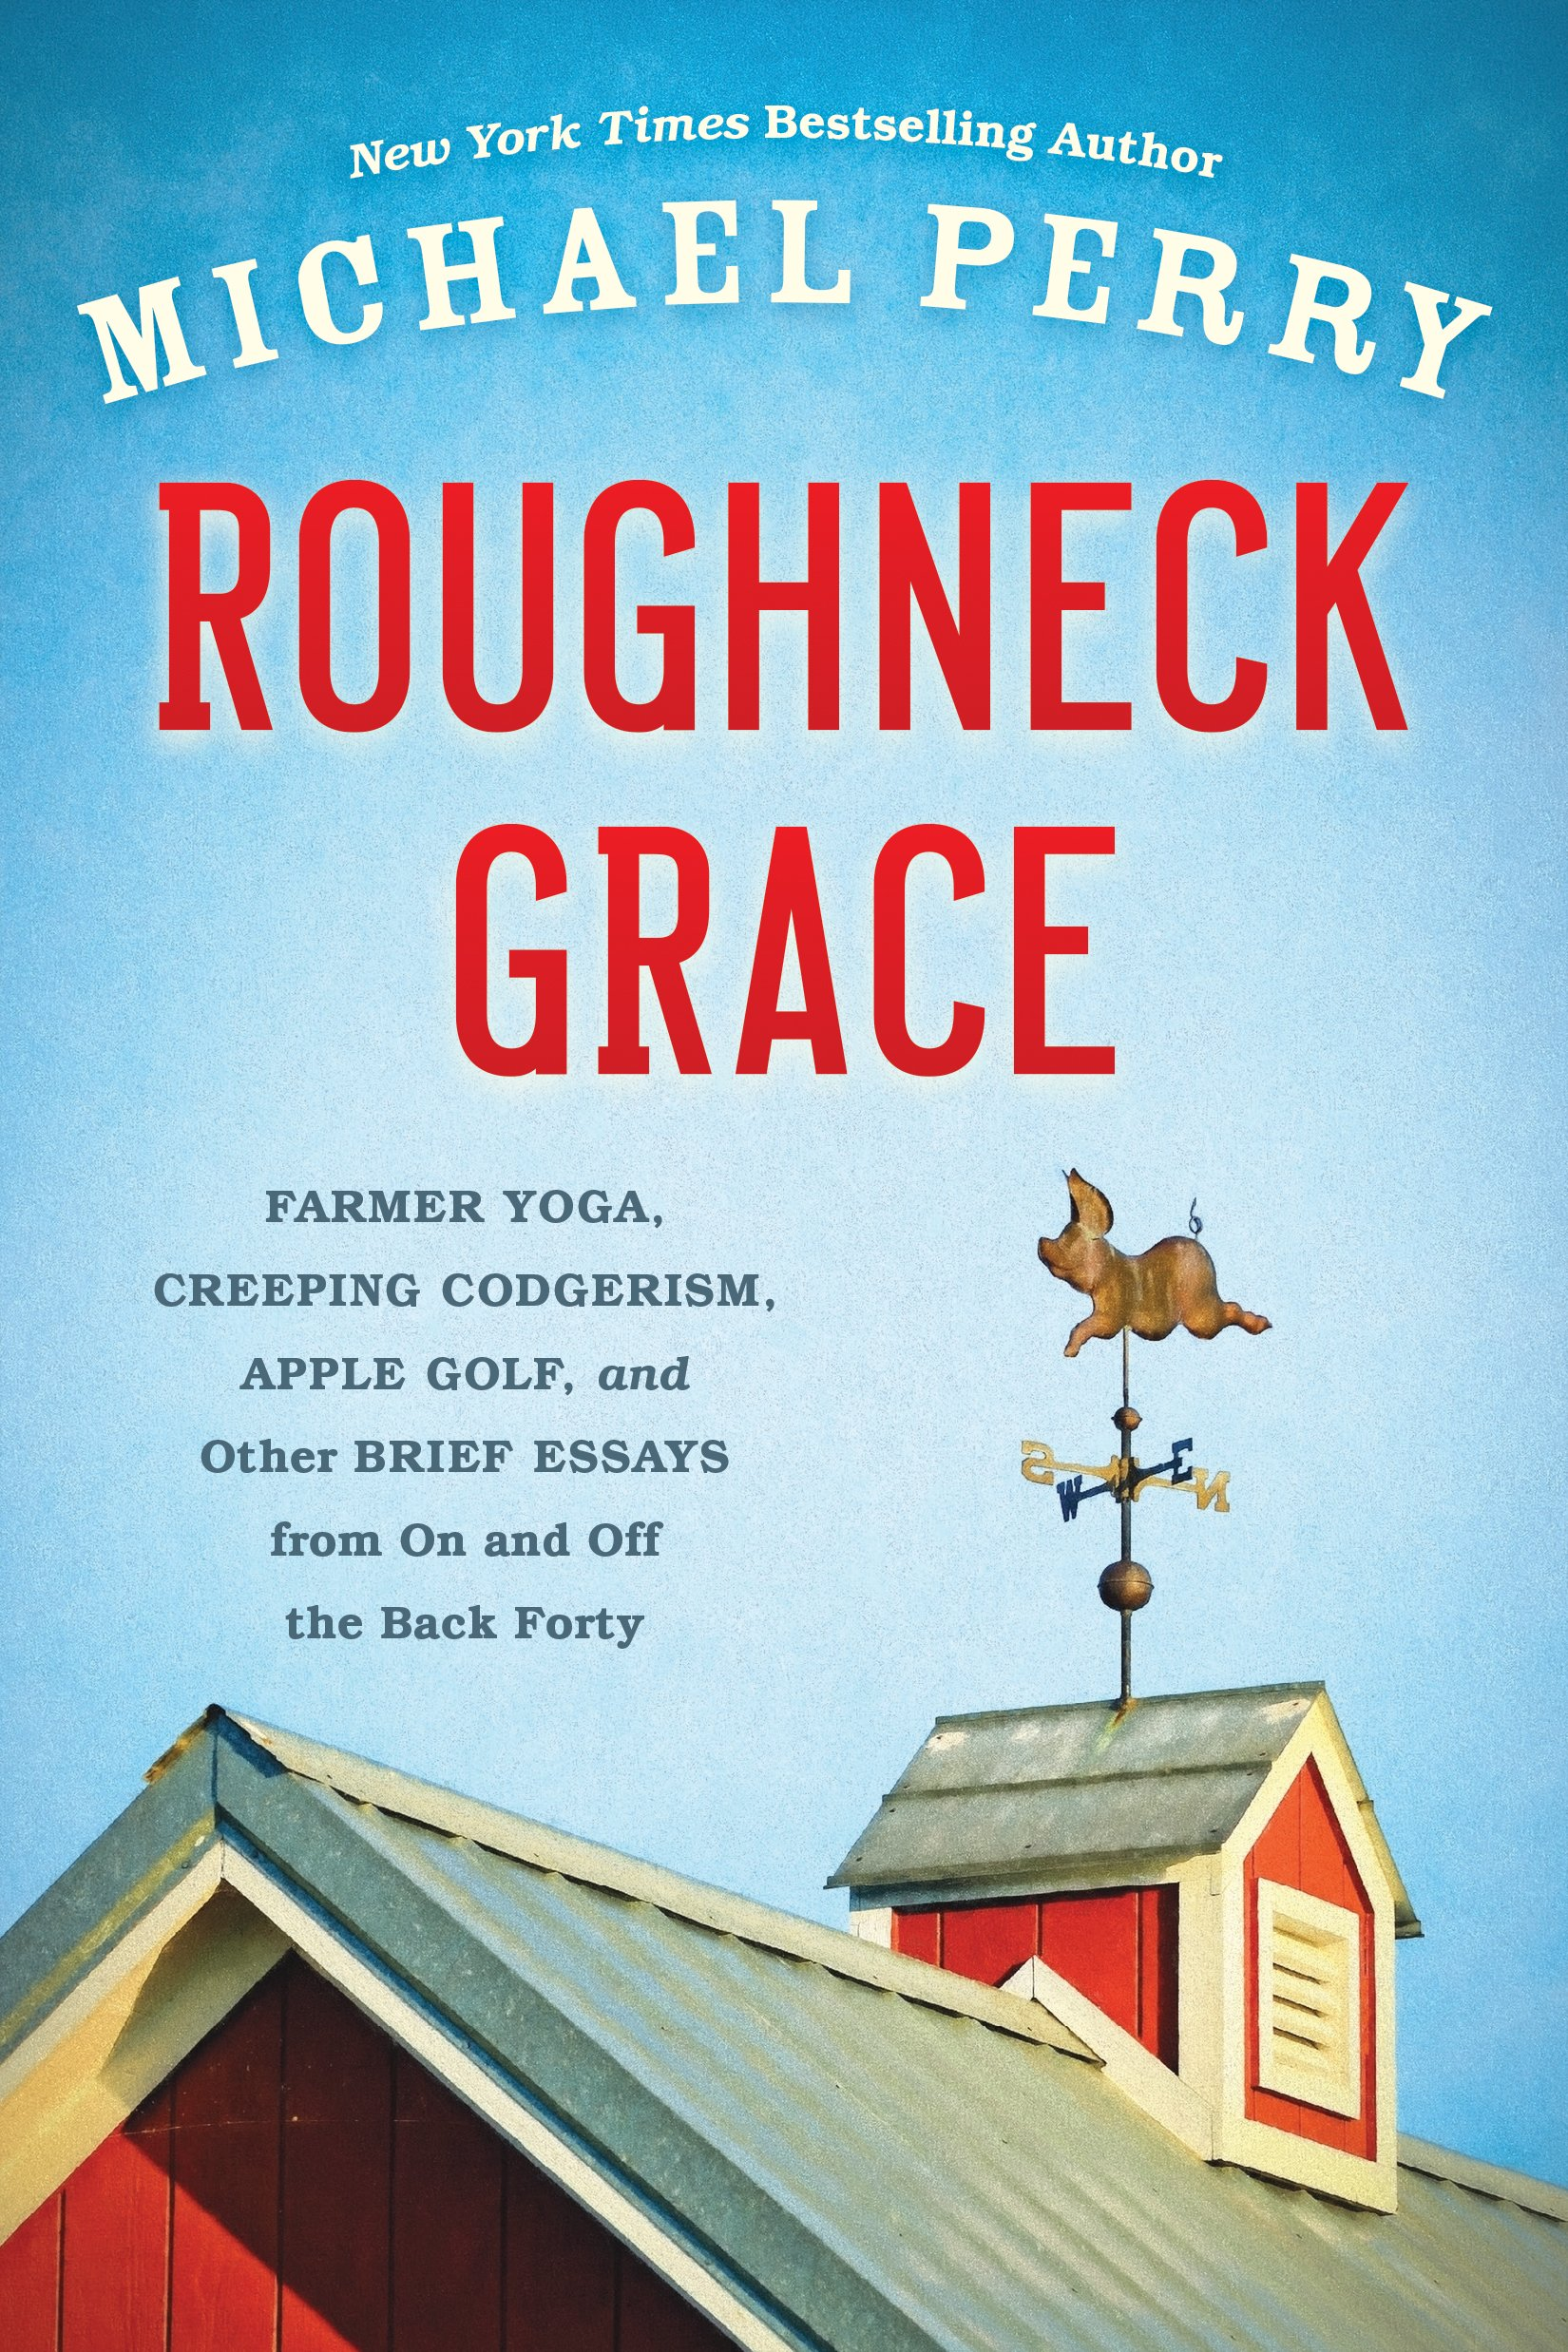 roughneck grace farmer yoga creeping codgerism apple golf and roughneck grace farmer yoga creeping codgerism apple golf and other brief essays from on and off the back forty michael perry 9780870208126